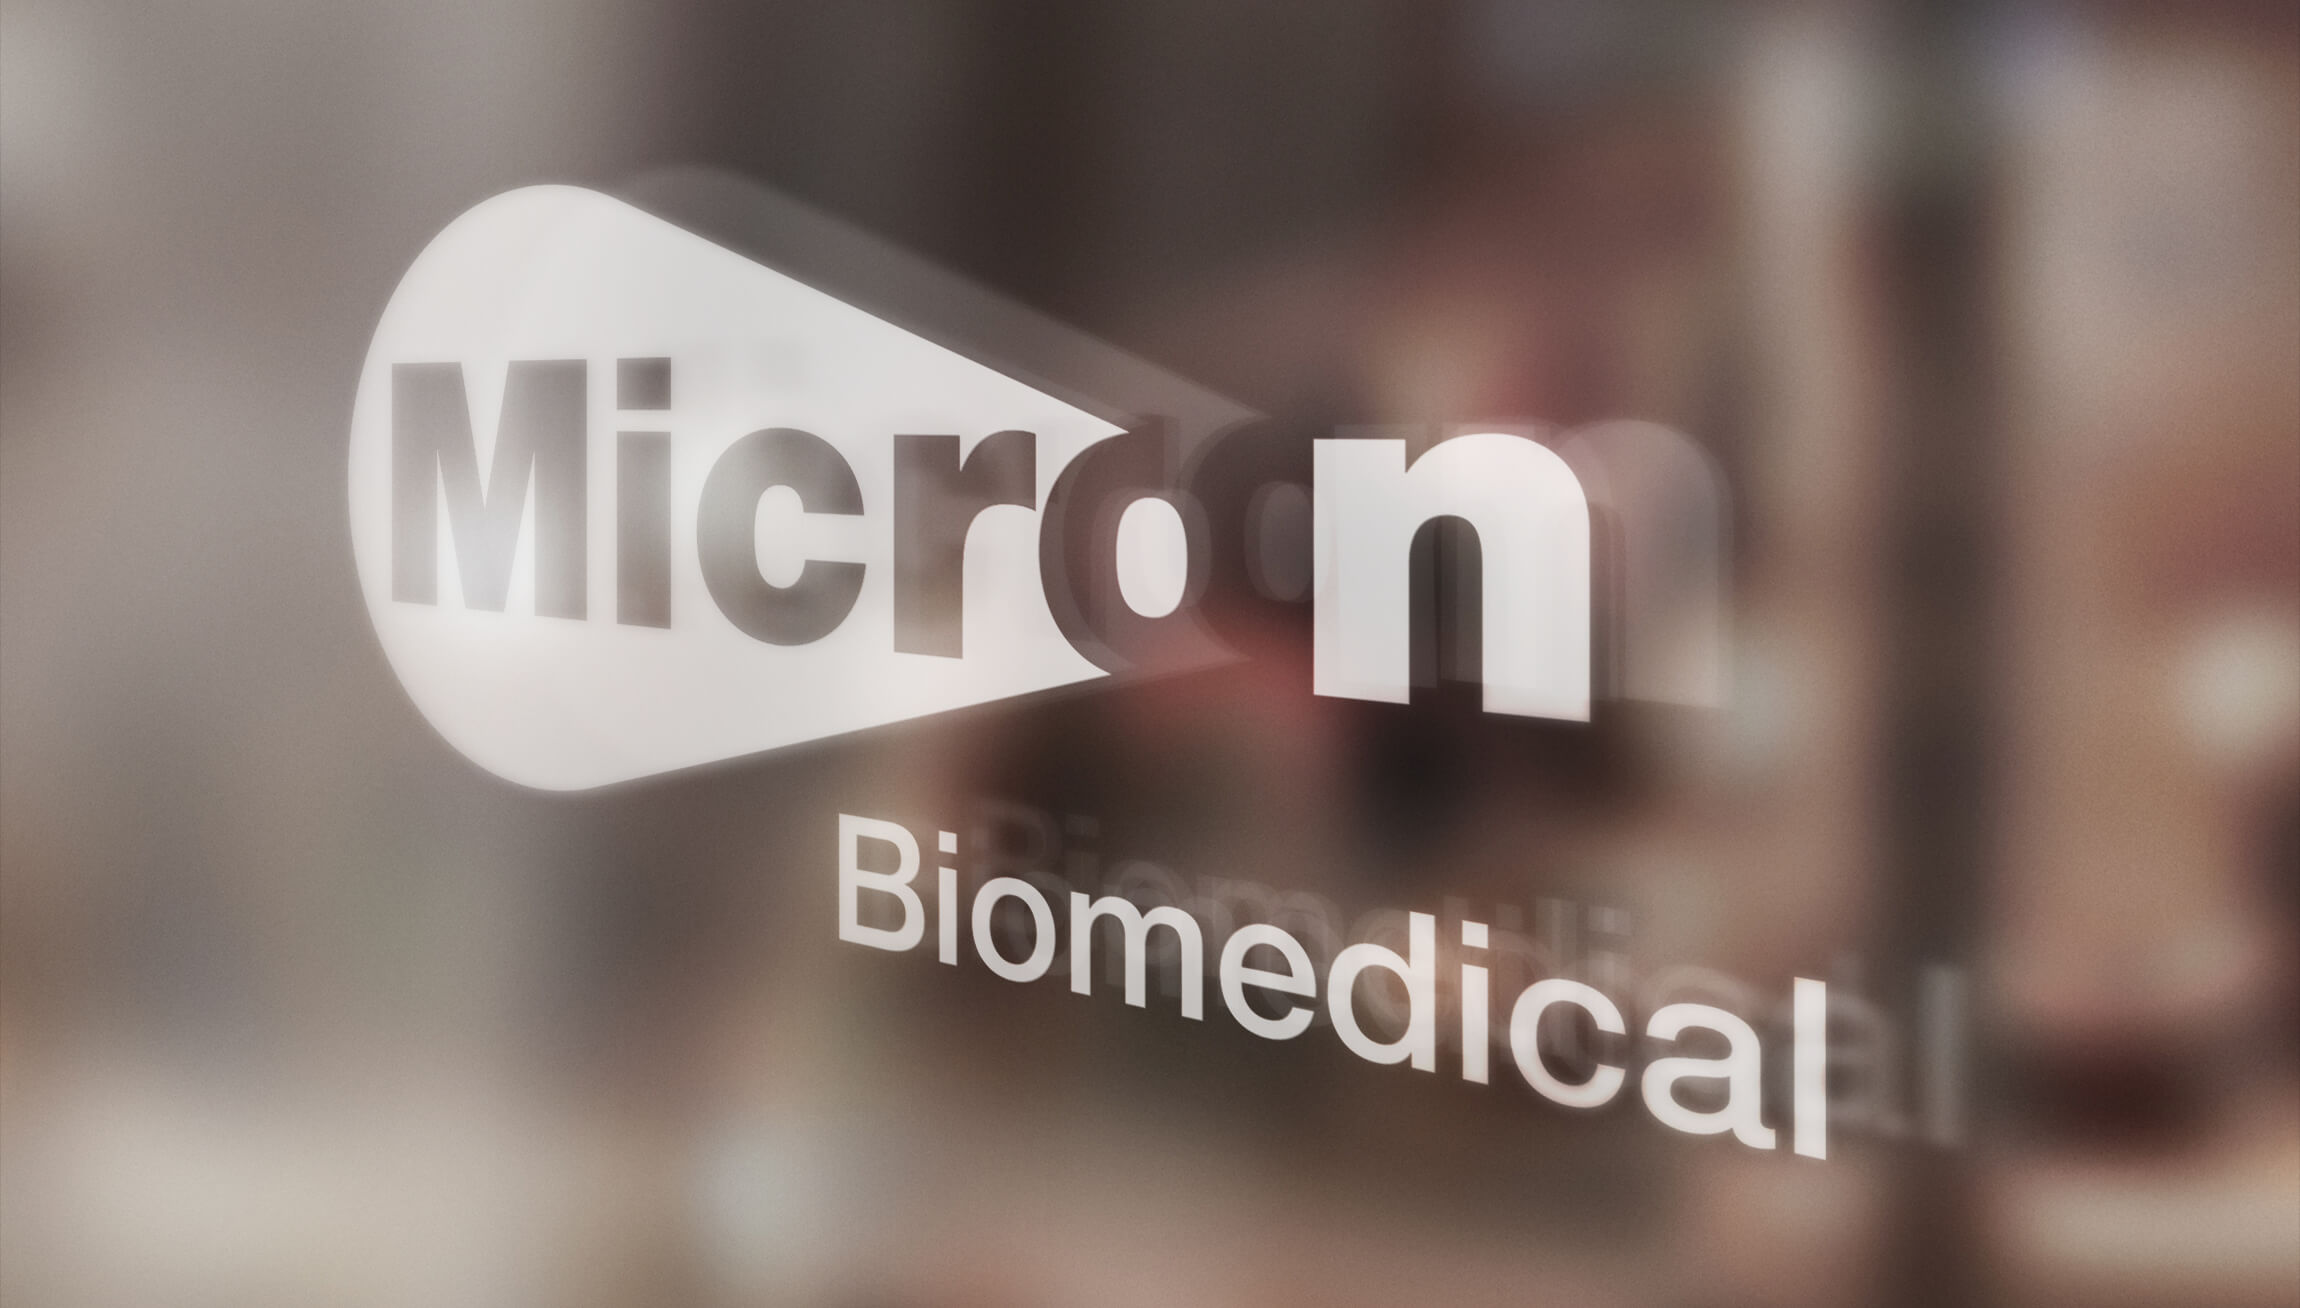 Logo & Branding - Logo design mockup on glass at an office for Micron Biomedical